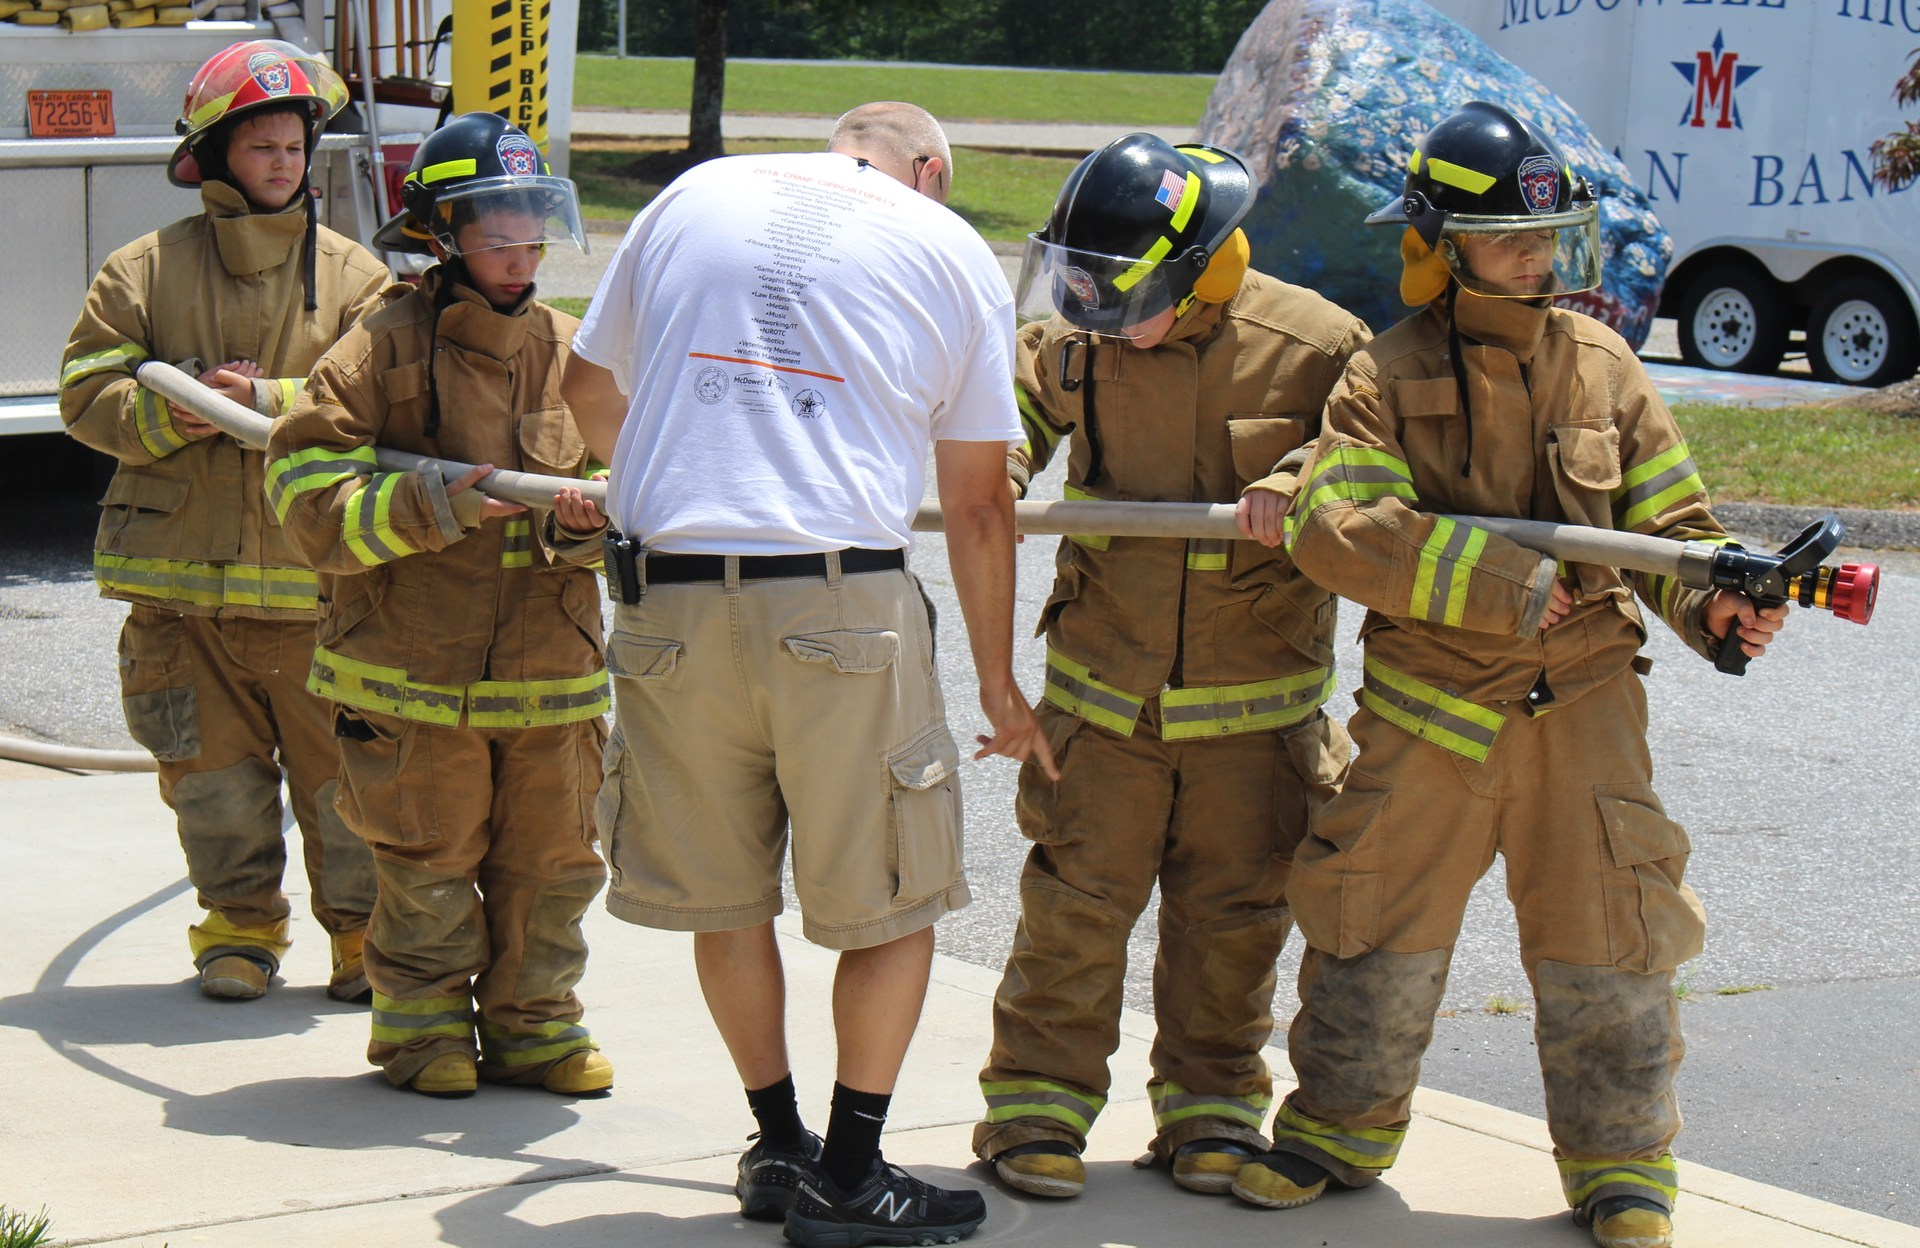 Students in fire gear learning about firefighting